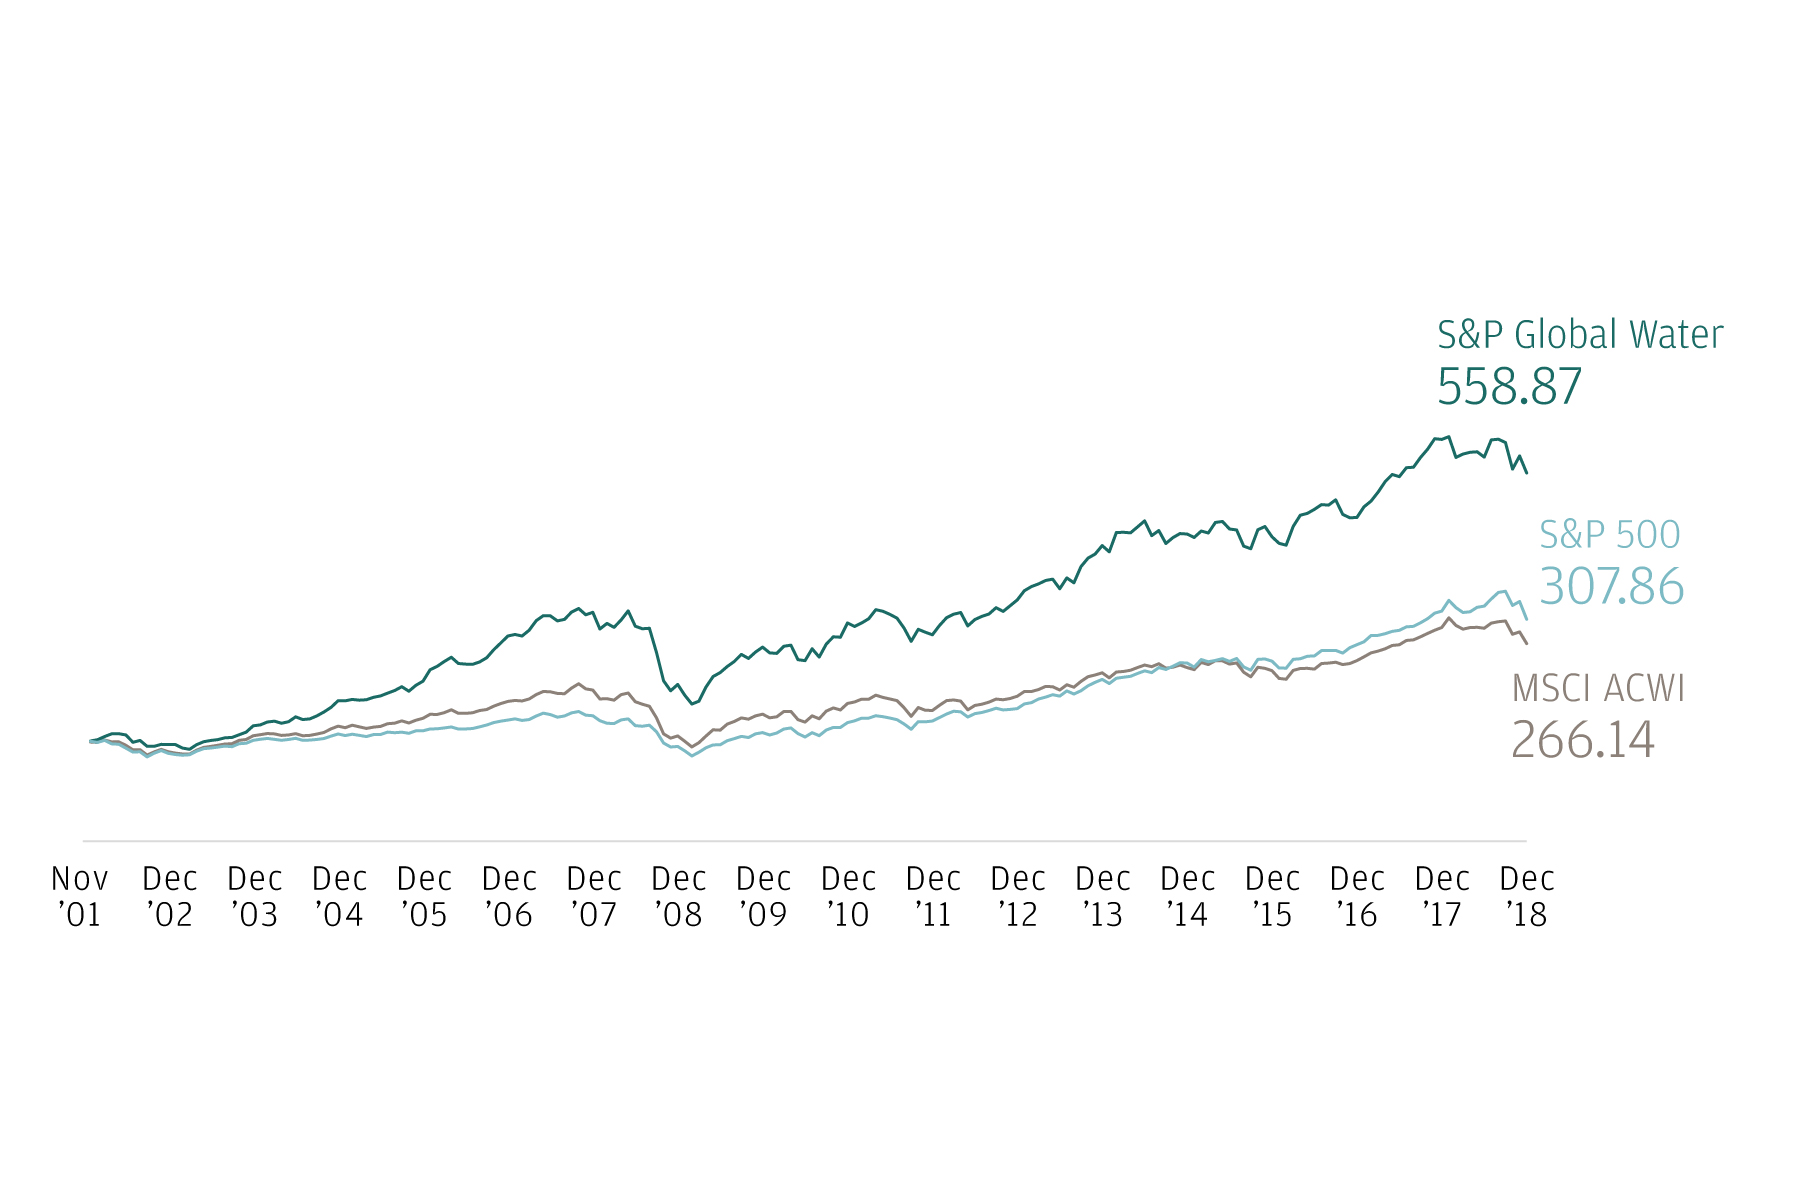 This three-line graph, covering the period November 2001 to April 2018, traces the growth in value of the MSCI ACWI Index, the S&P 500 Index and the S&P Global Water Index.